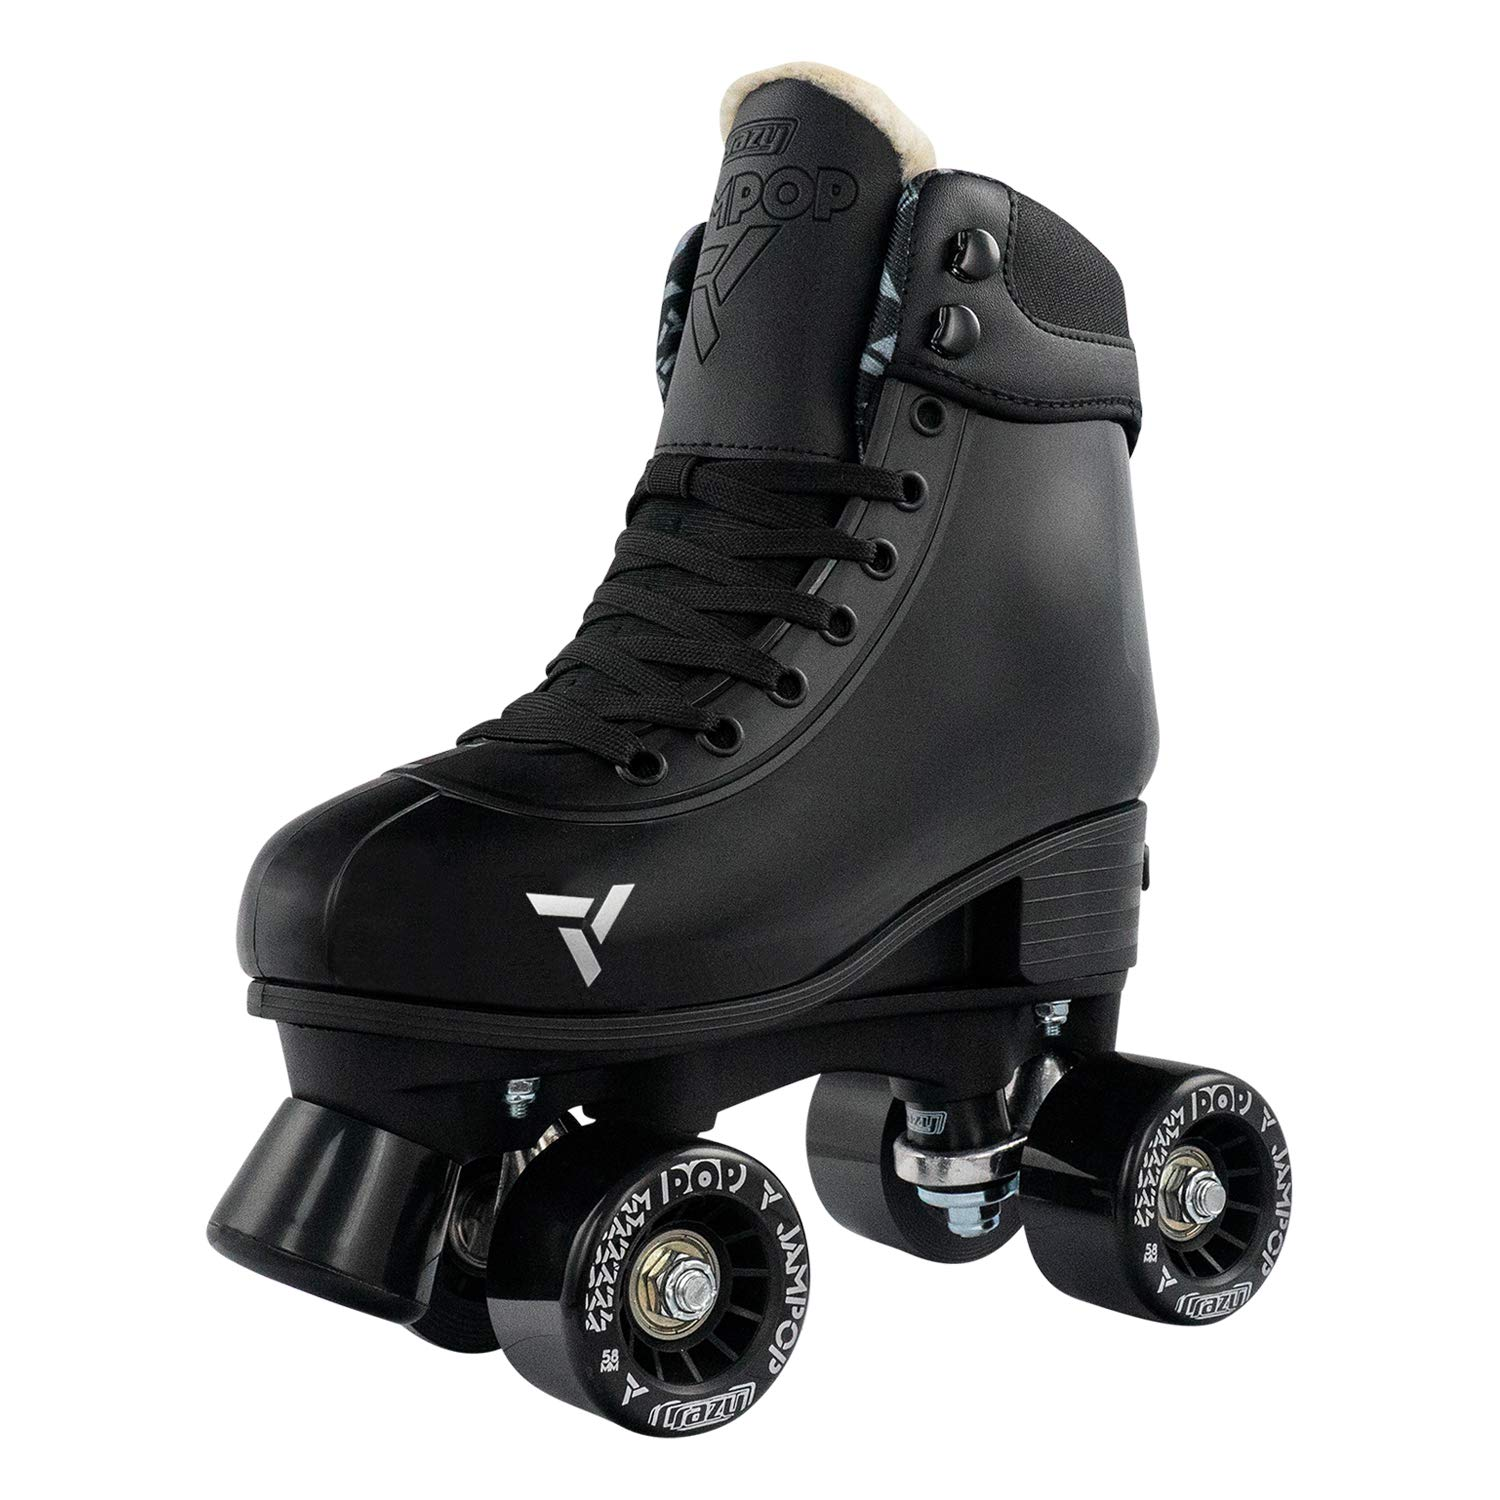 Crazy Skates Adjustable Roller Skates for Boys and Girls – Adjusts to Fit 4 Shoe Sizes – Jam Pop Series